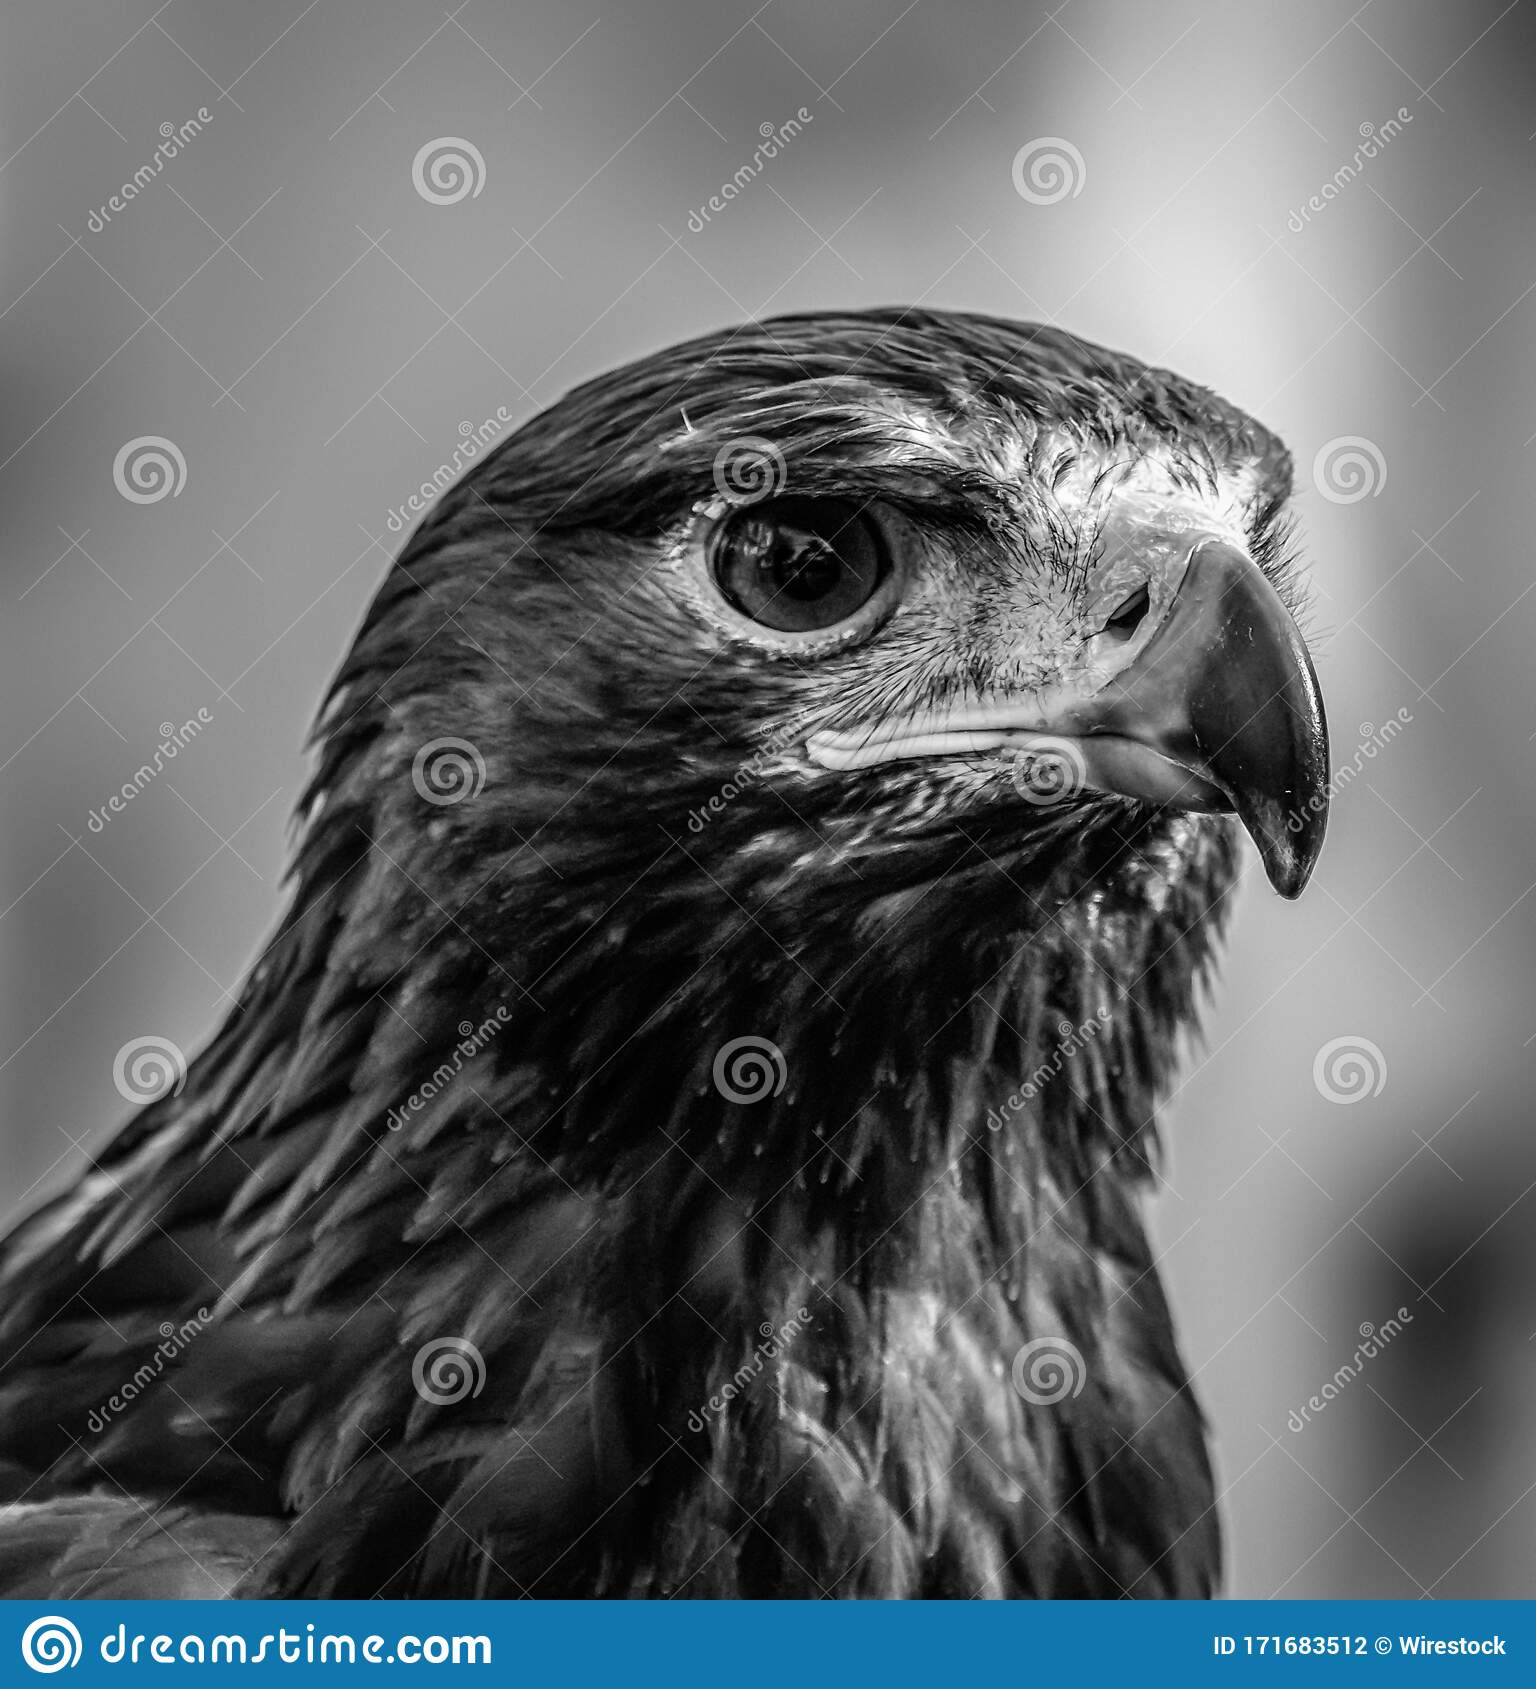 597 Greyscale Face Photos Free Royalty Free Stock Photos From Dreamstime